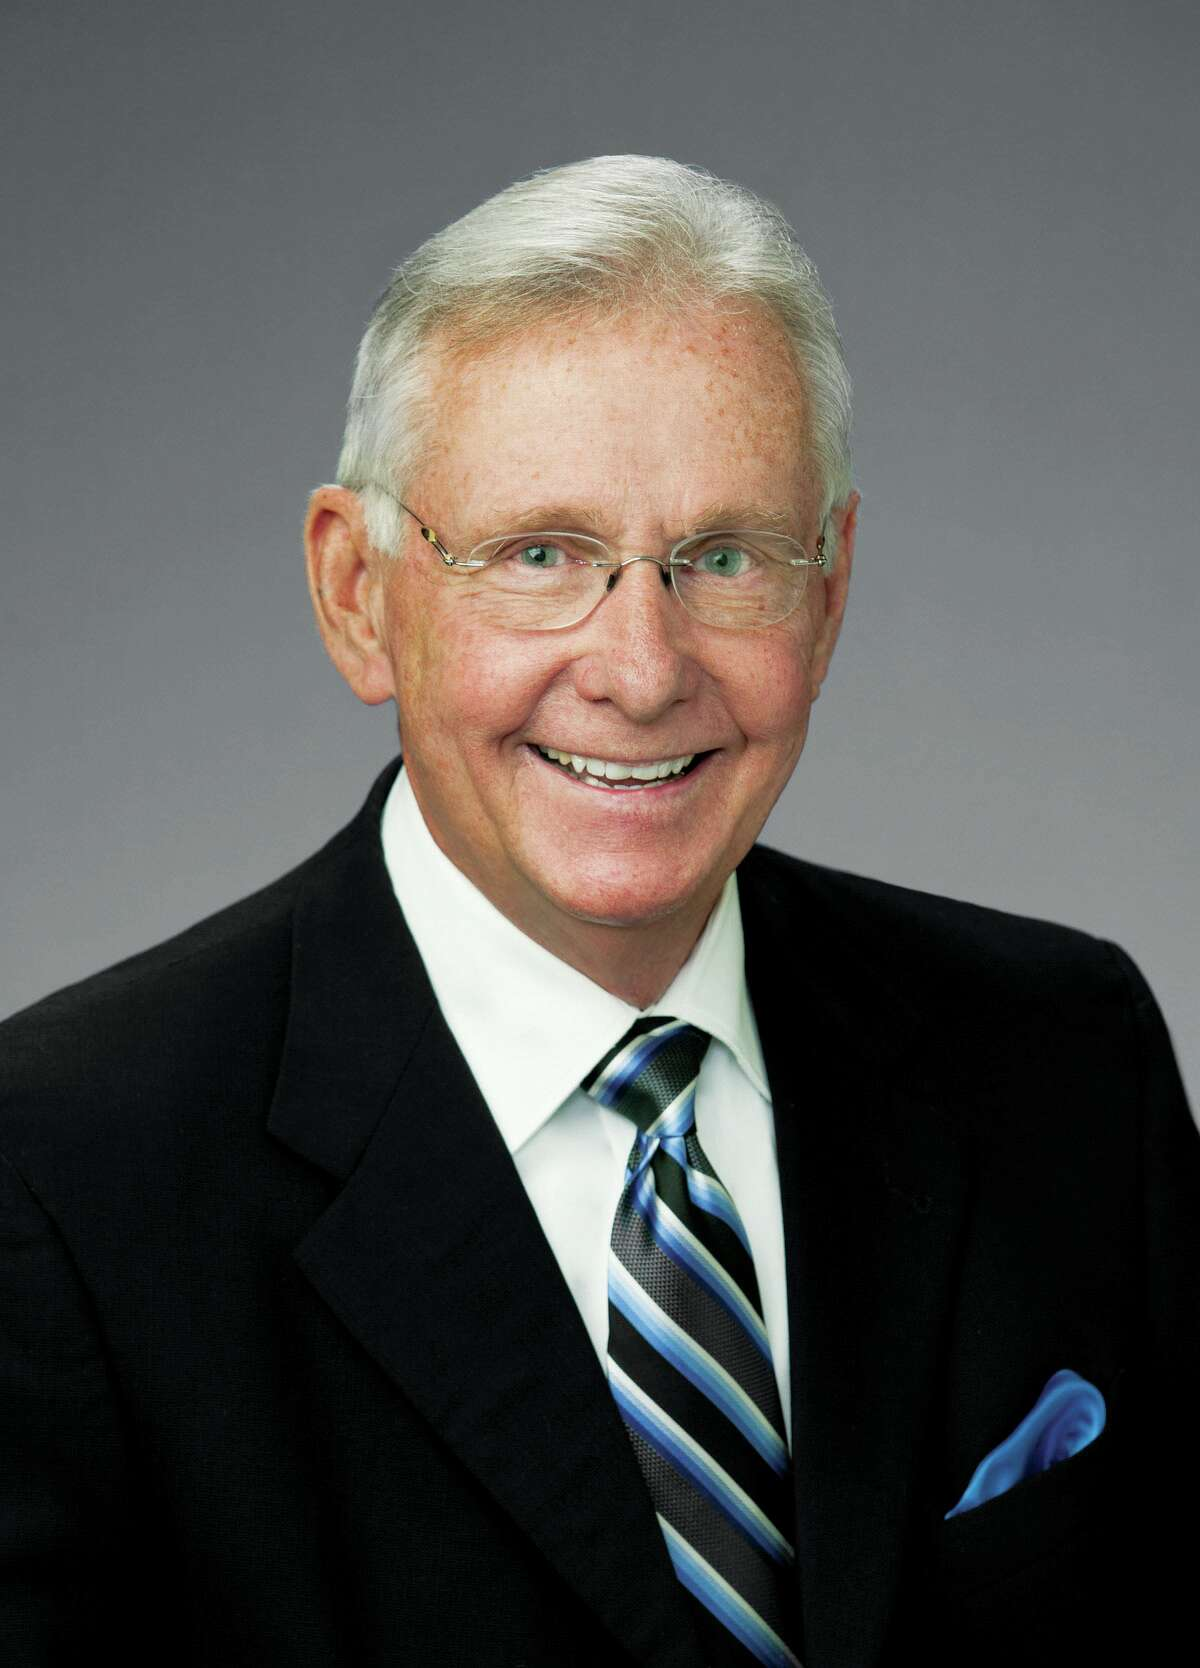 Clyde Fitzgerald is a commissioner for the Port of Houston.